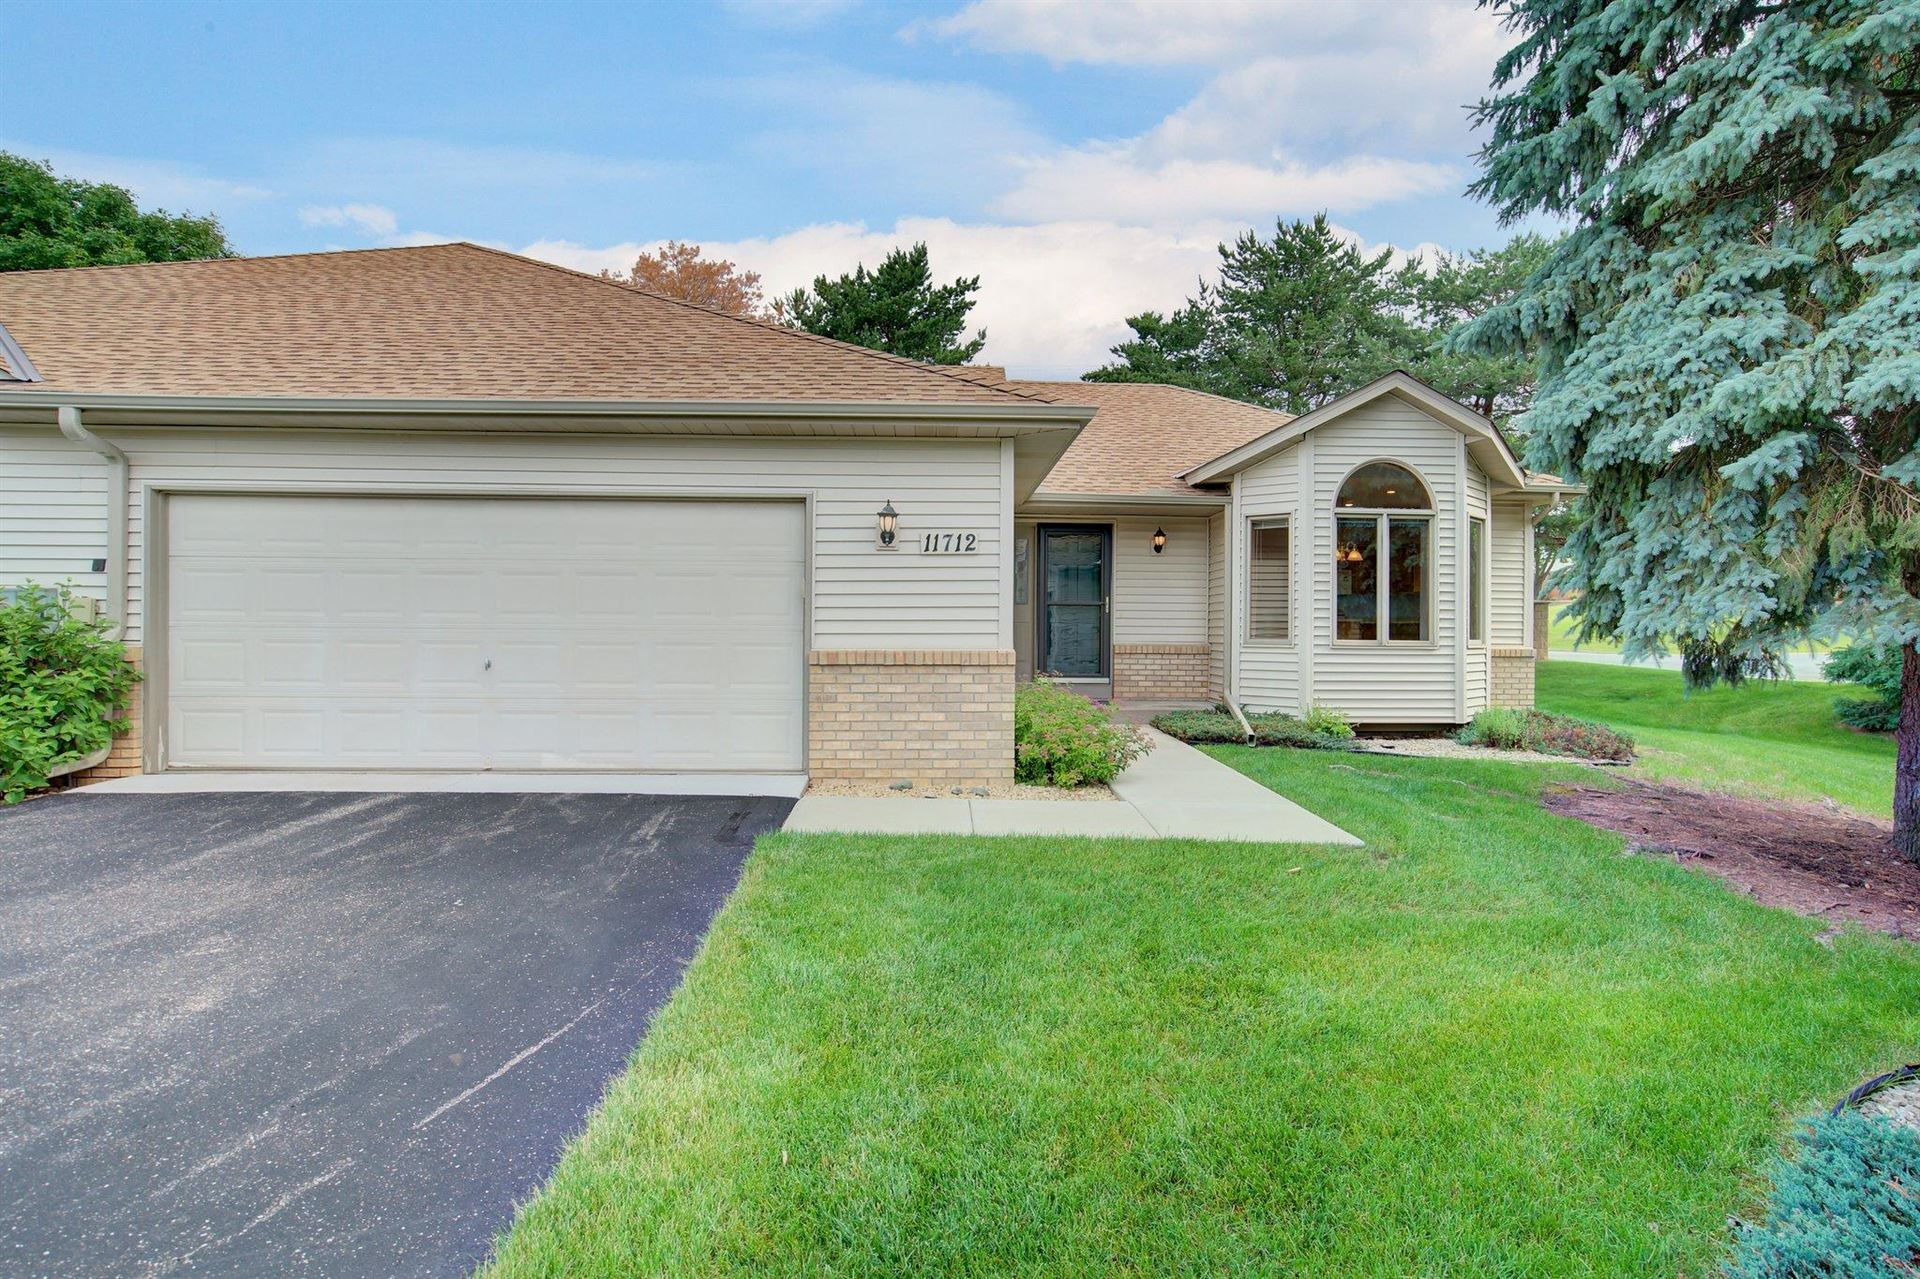 11712 88th Place N, Maple Grove, MN 55369 - #: 5612139